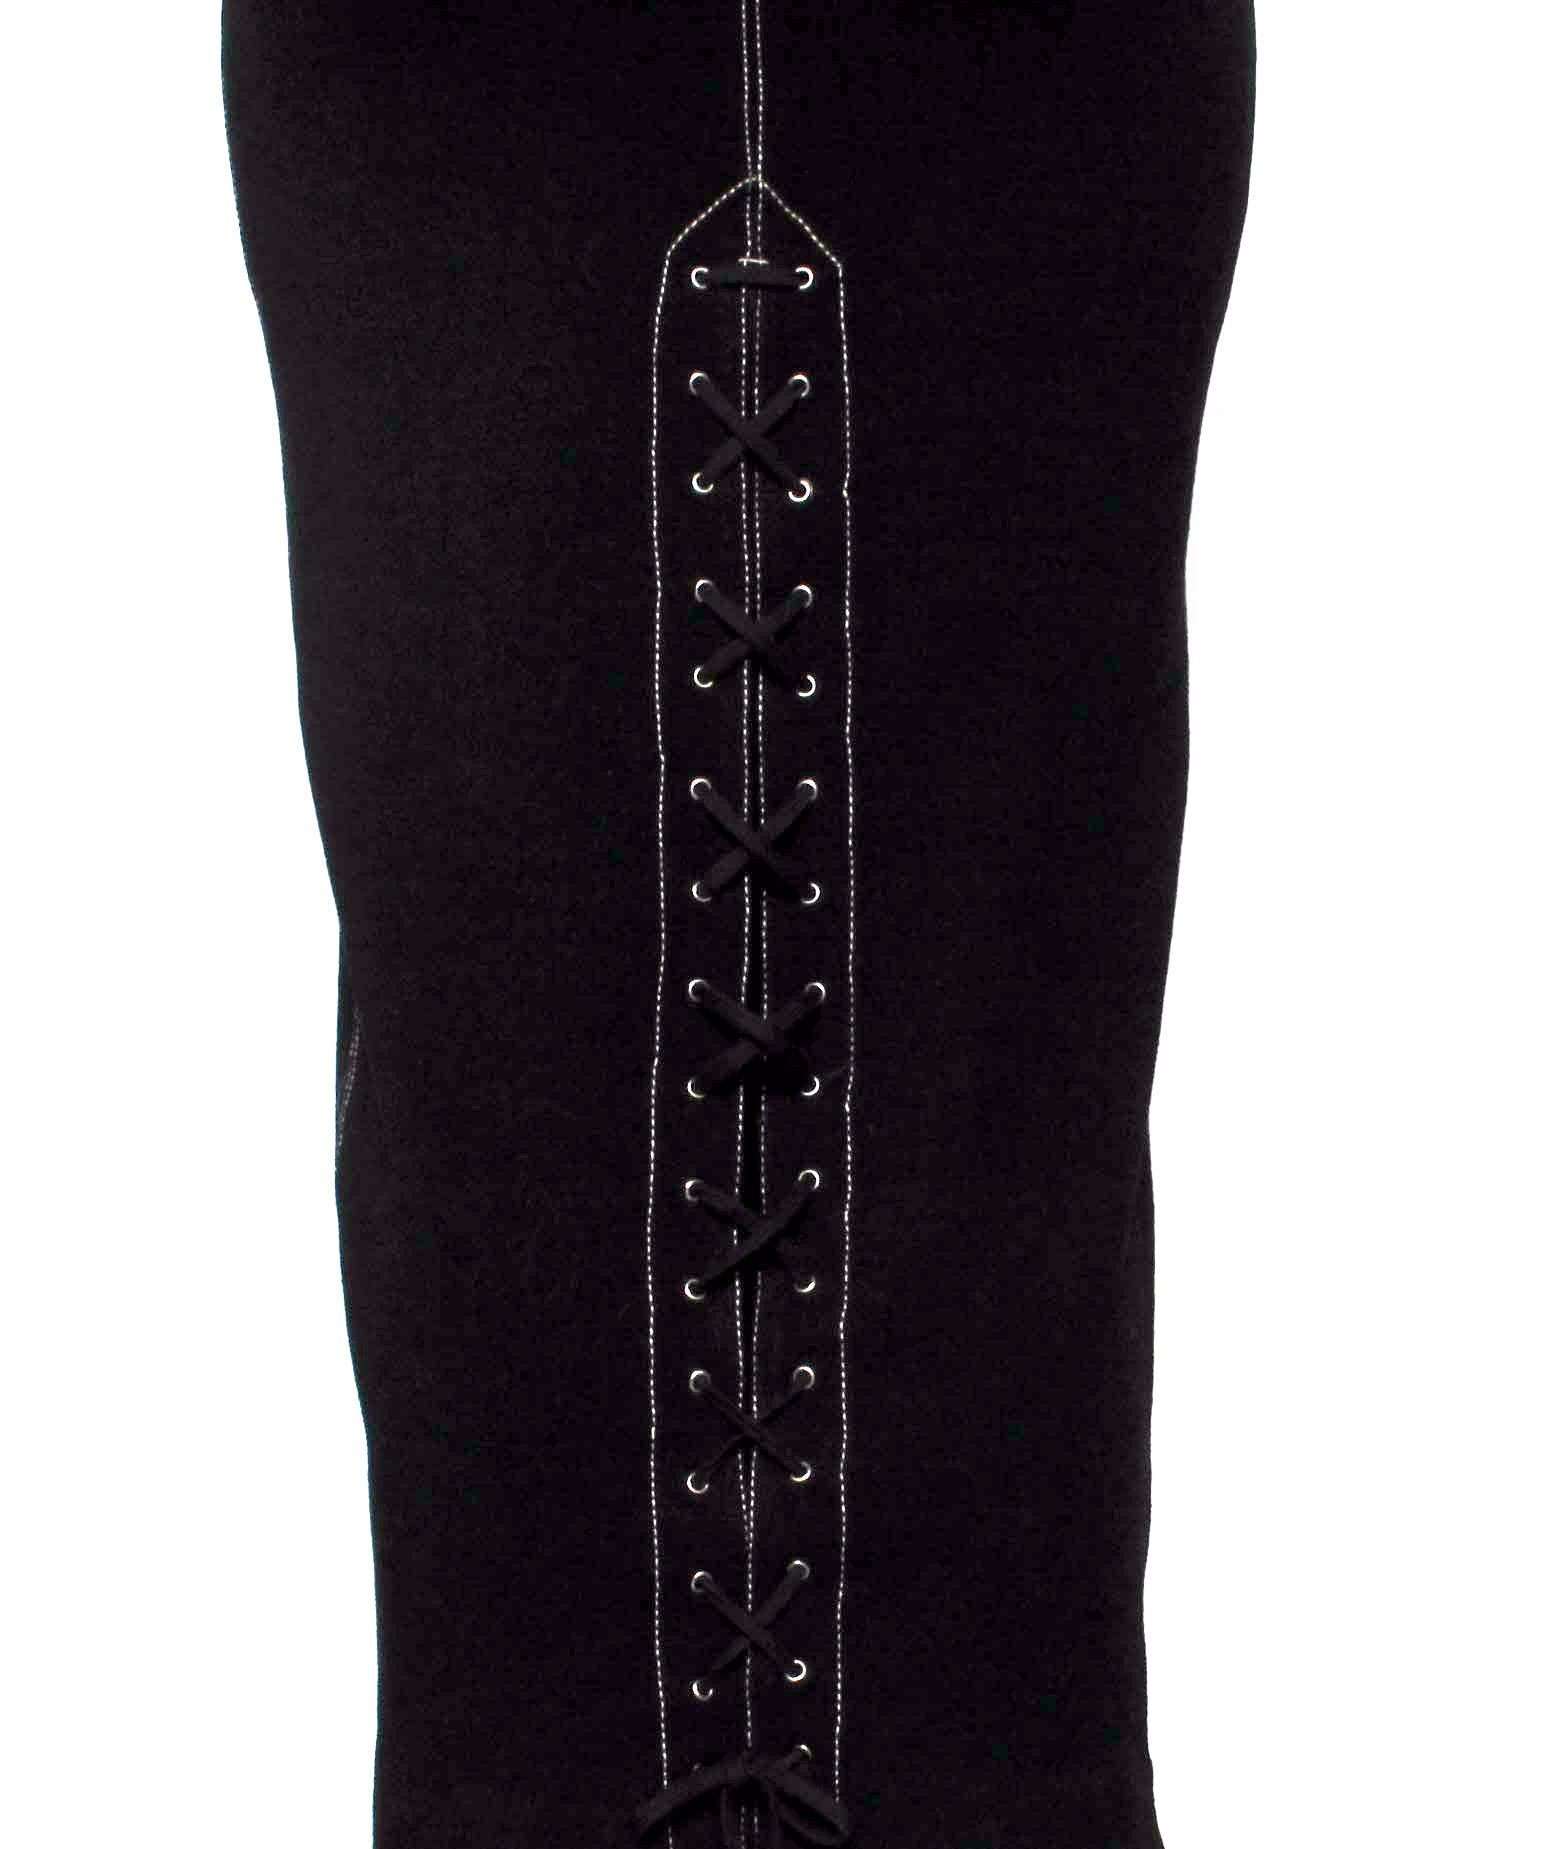 Jean Paul Gaultier Belt Strap Dress - C.Madeleine's